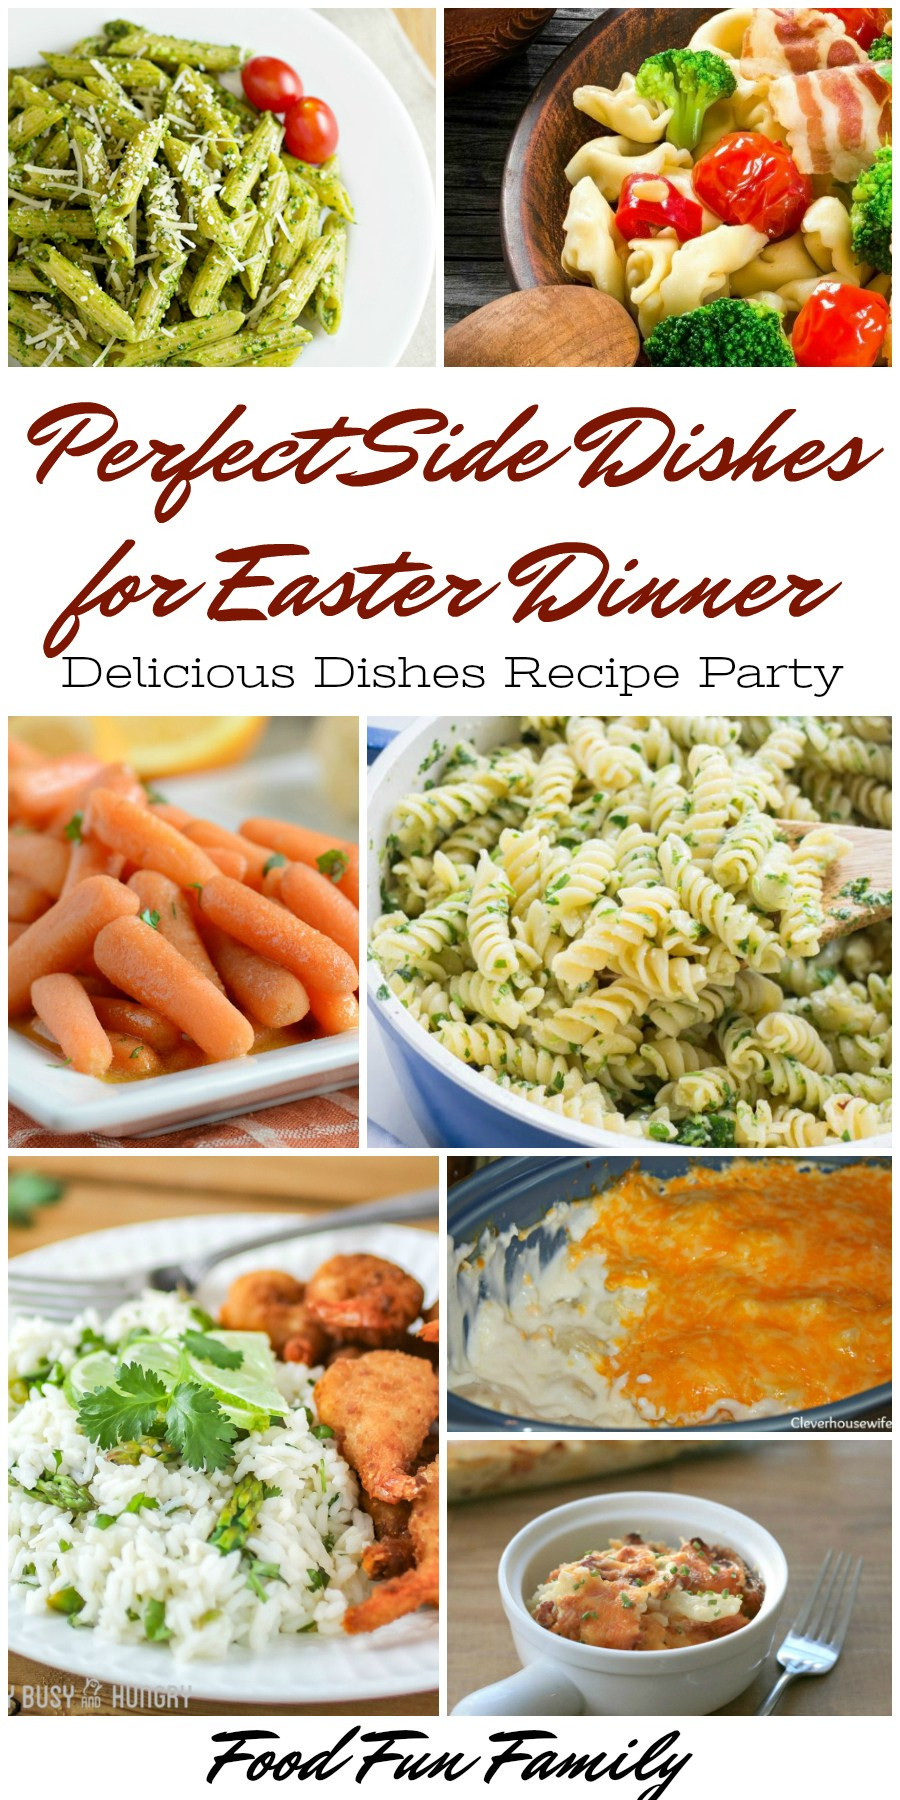 Easter Dinner Side Dishes  Perfect Side Dishes for Easter Dinner – Delicious Dishes